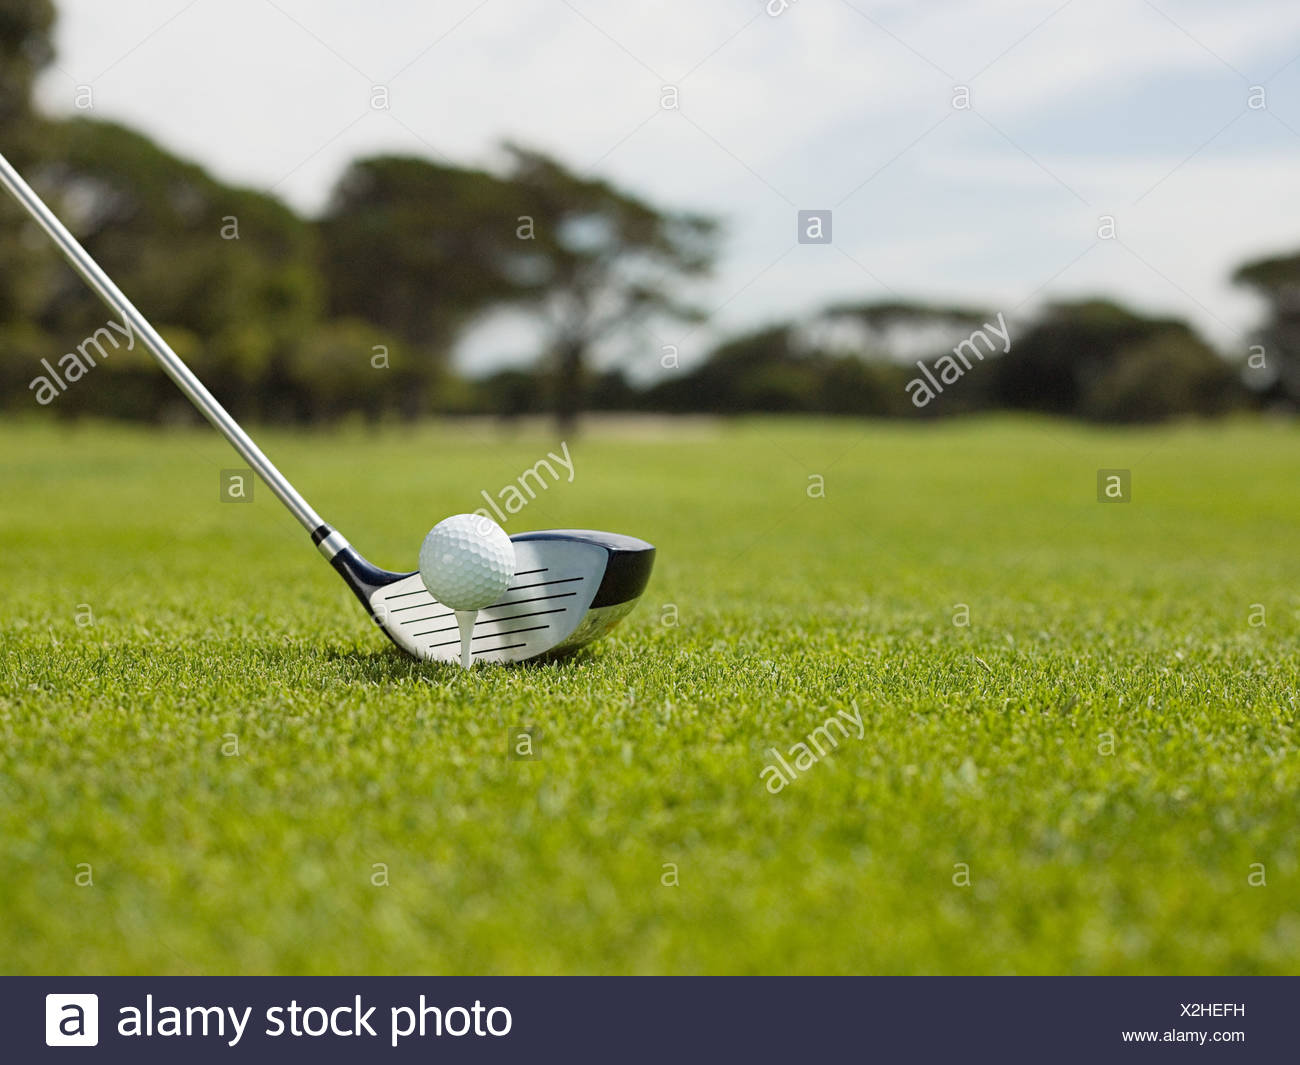 Golf ball on golf course, close up - Stock Image